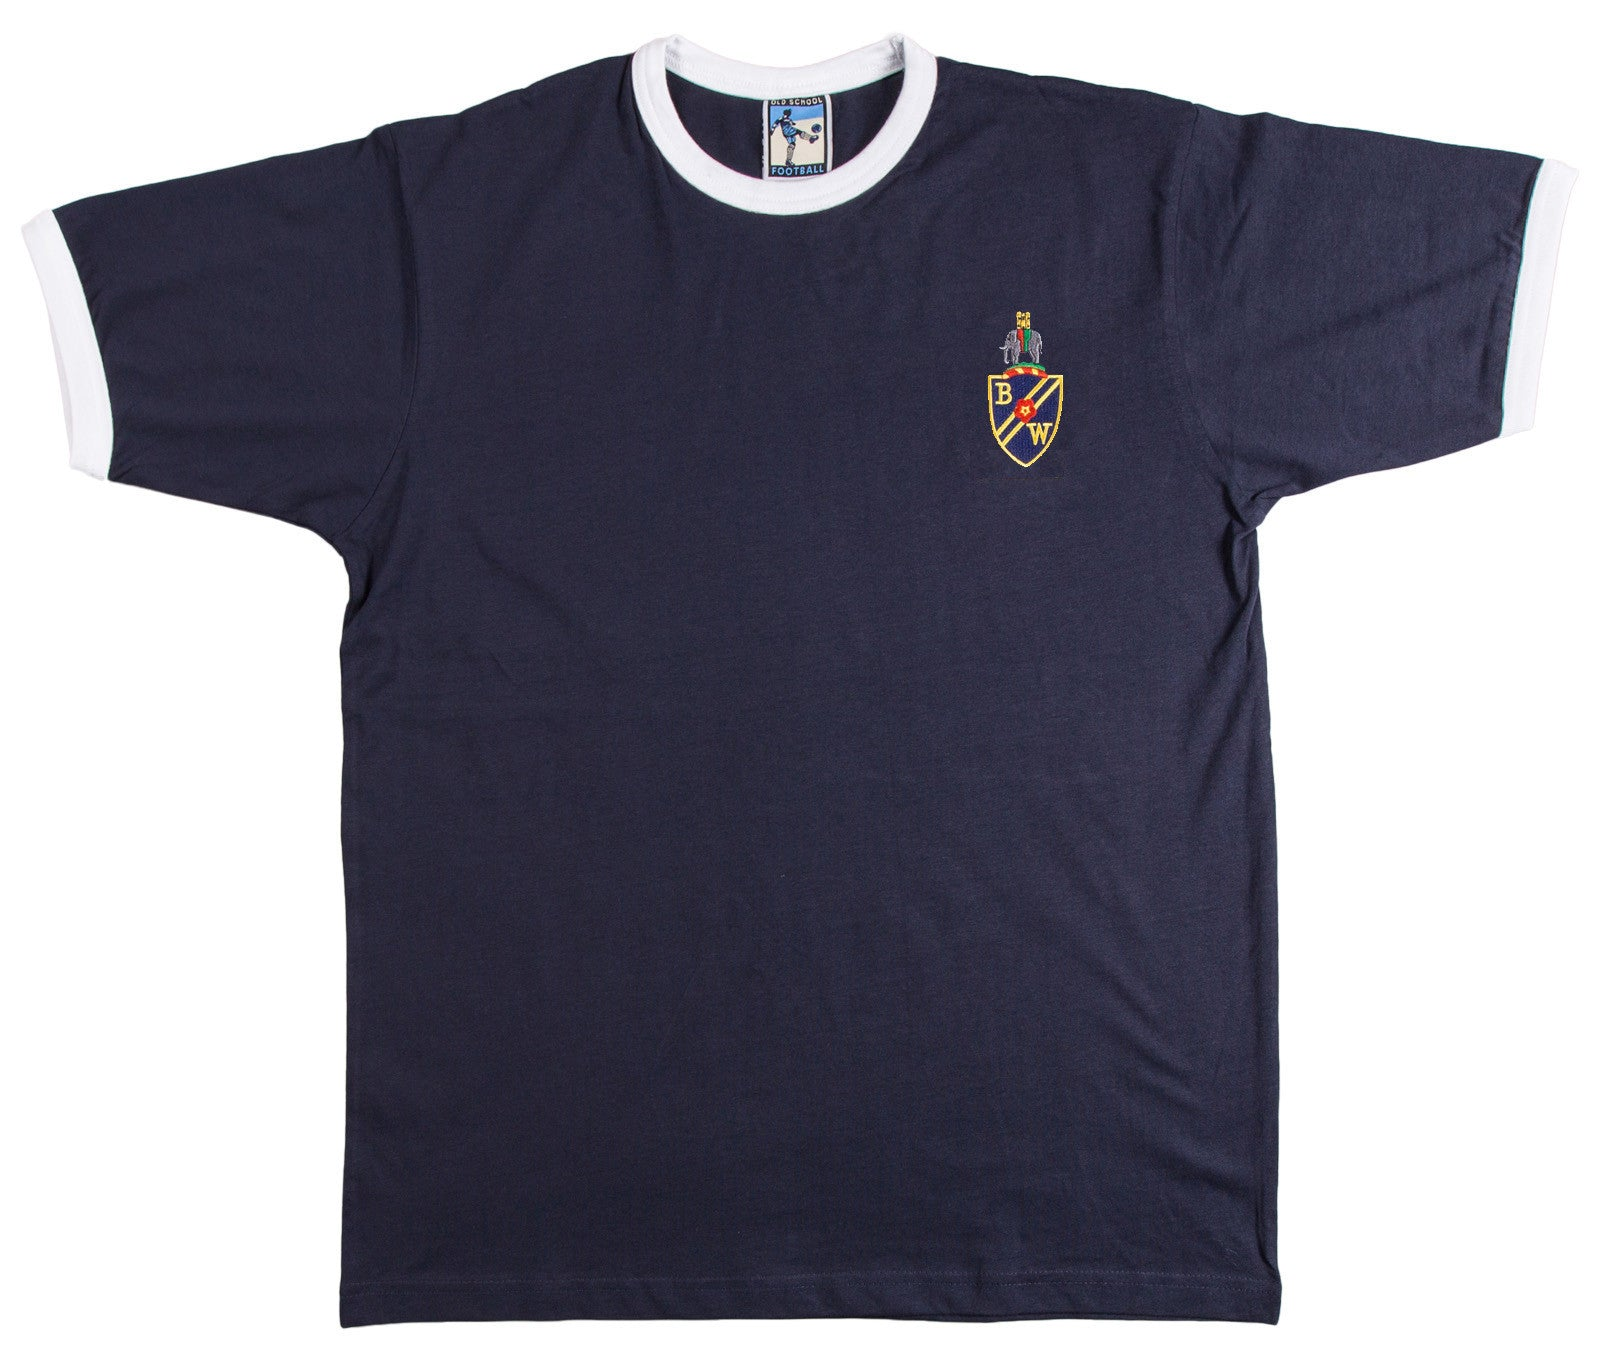 Bolton Wanderers Retro 1950s / 1960s Football T-Shirt Navy Blue - T-shirt